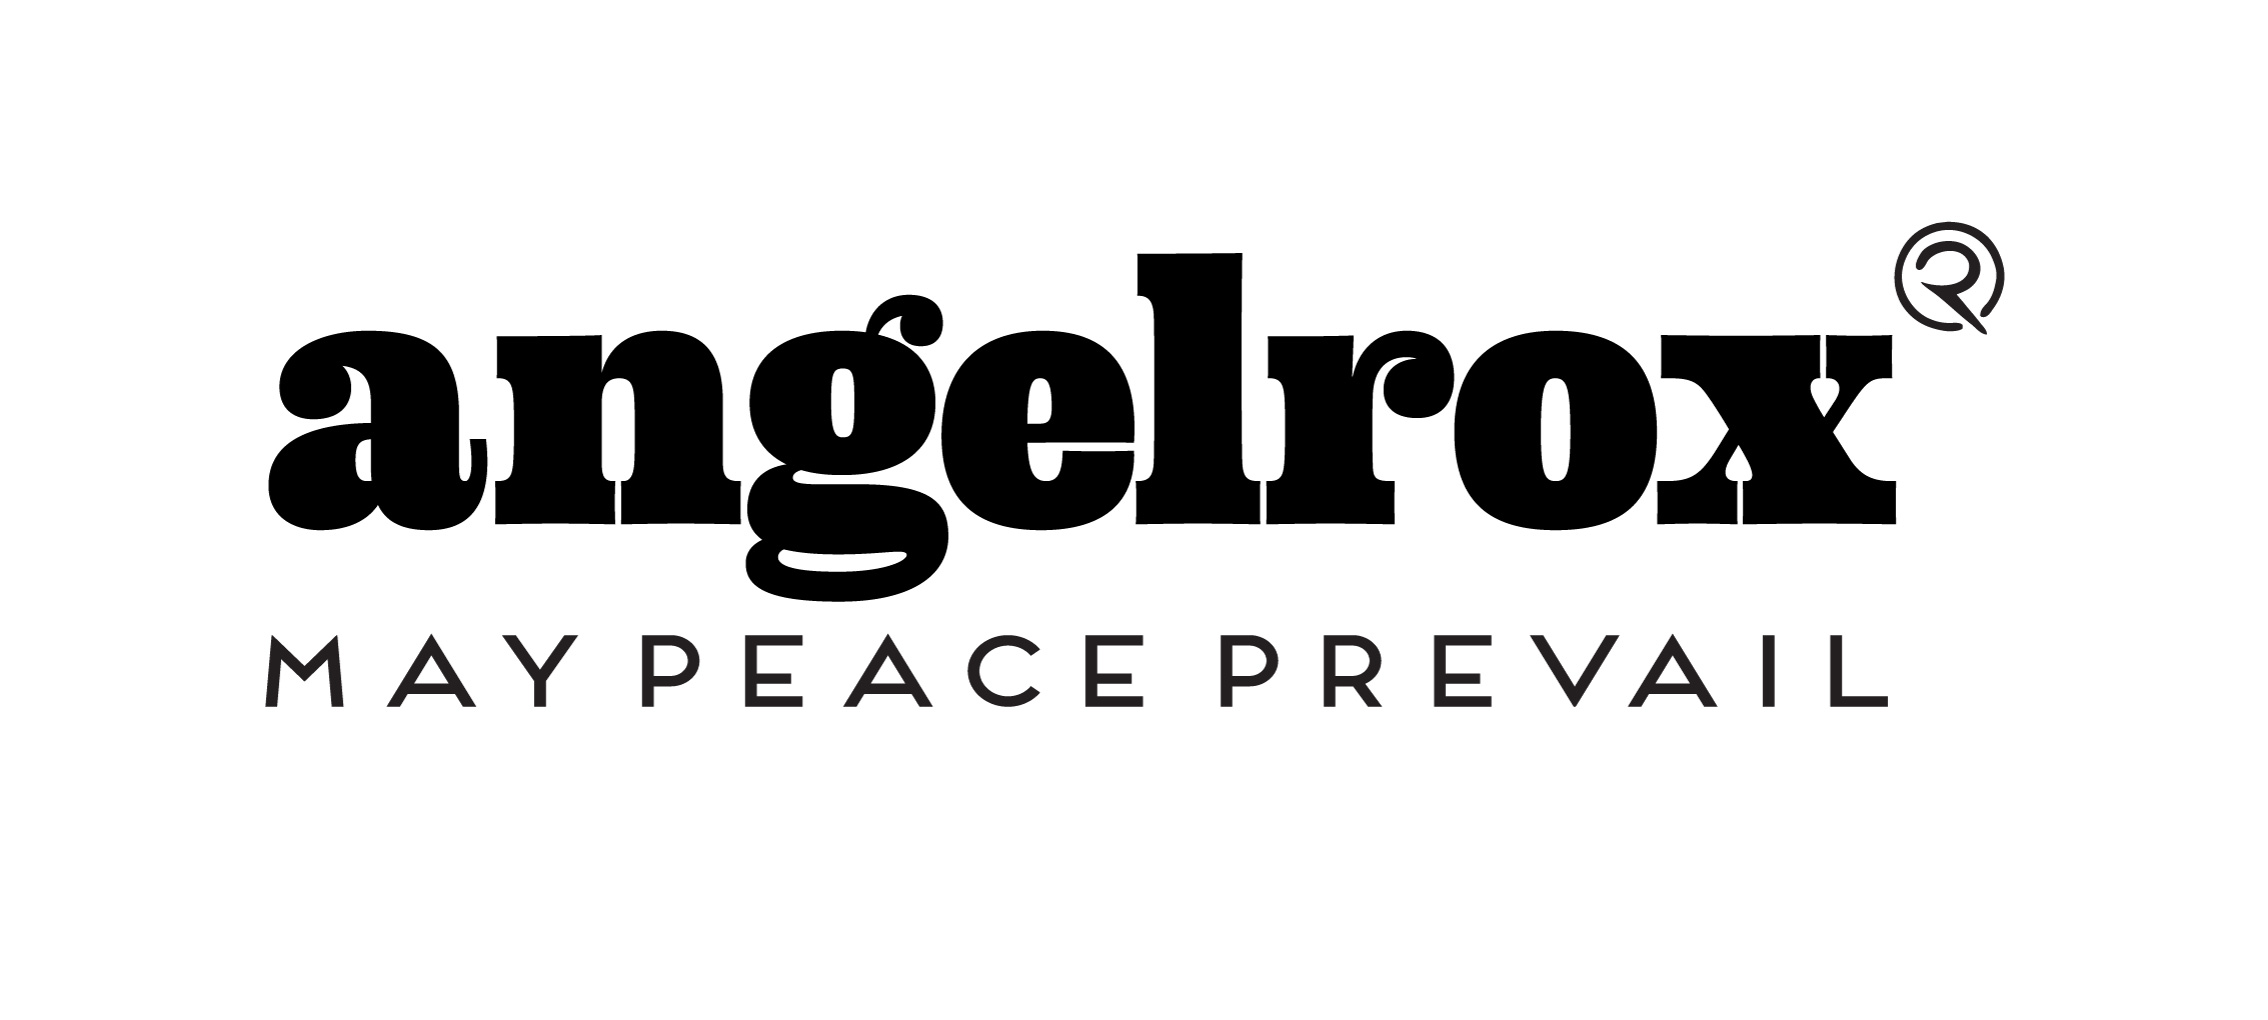 angelrox_maypeaceprevail_frontage_outlines_Hires.jpg